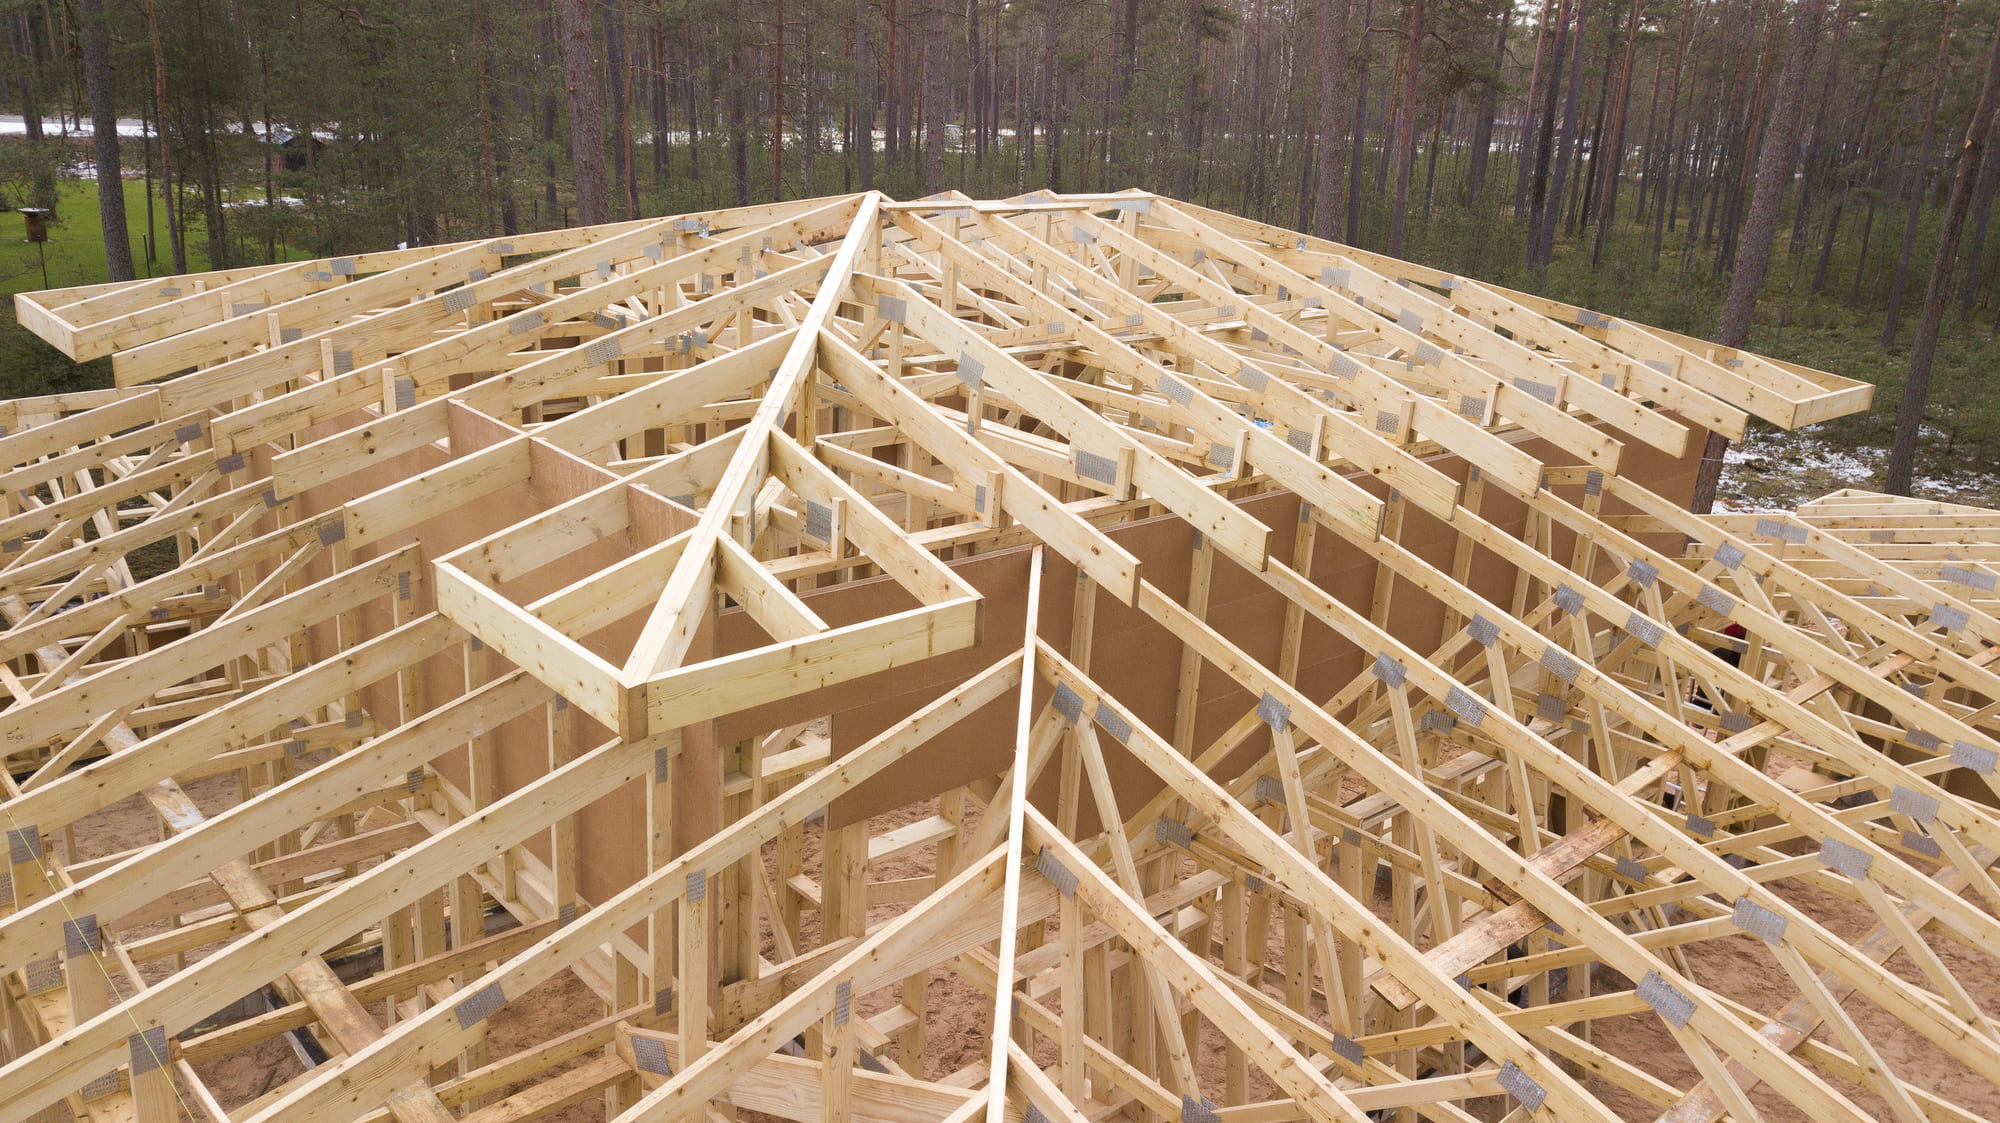 roof that will form from the trusses